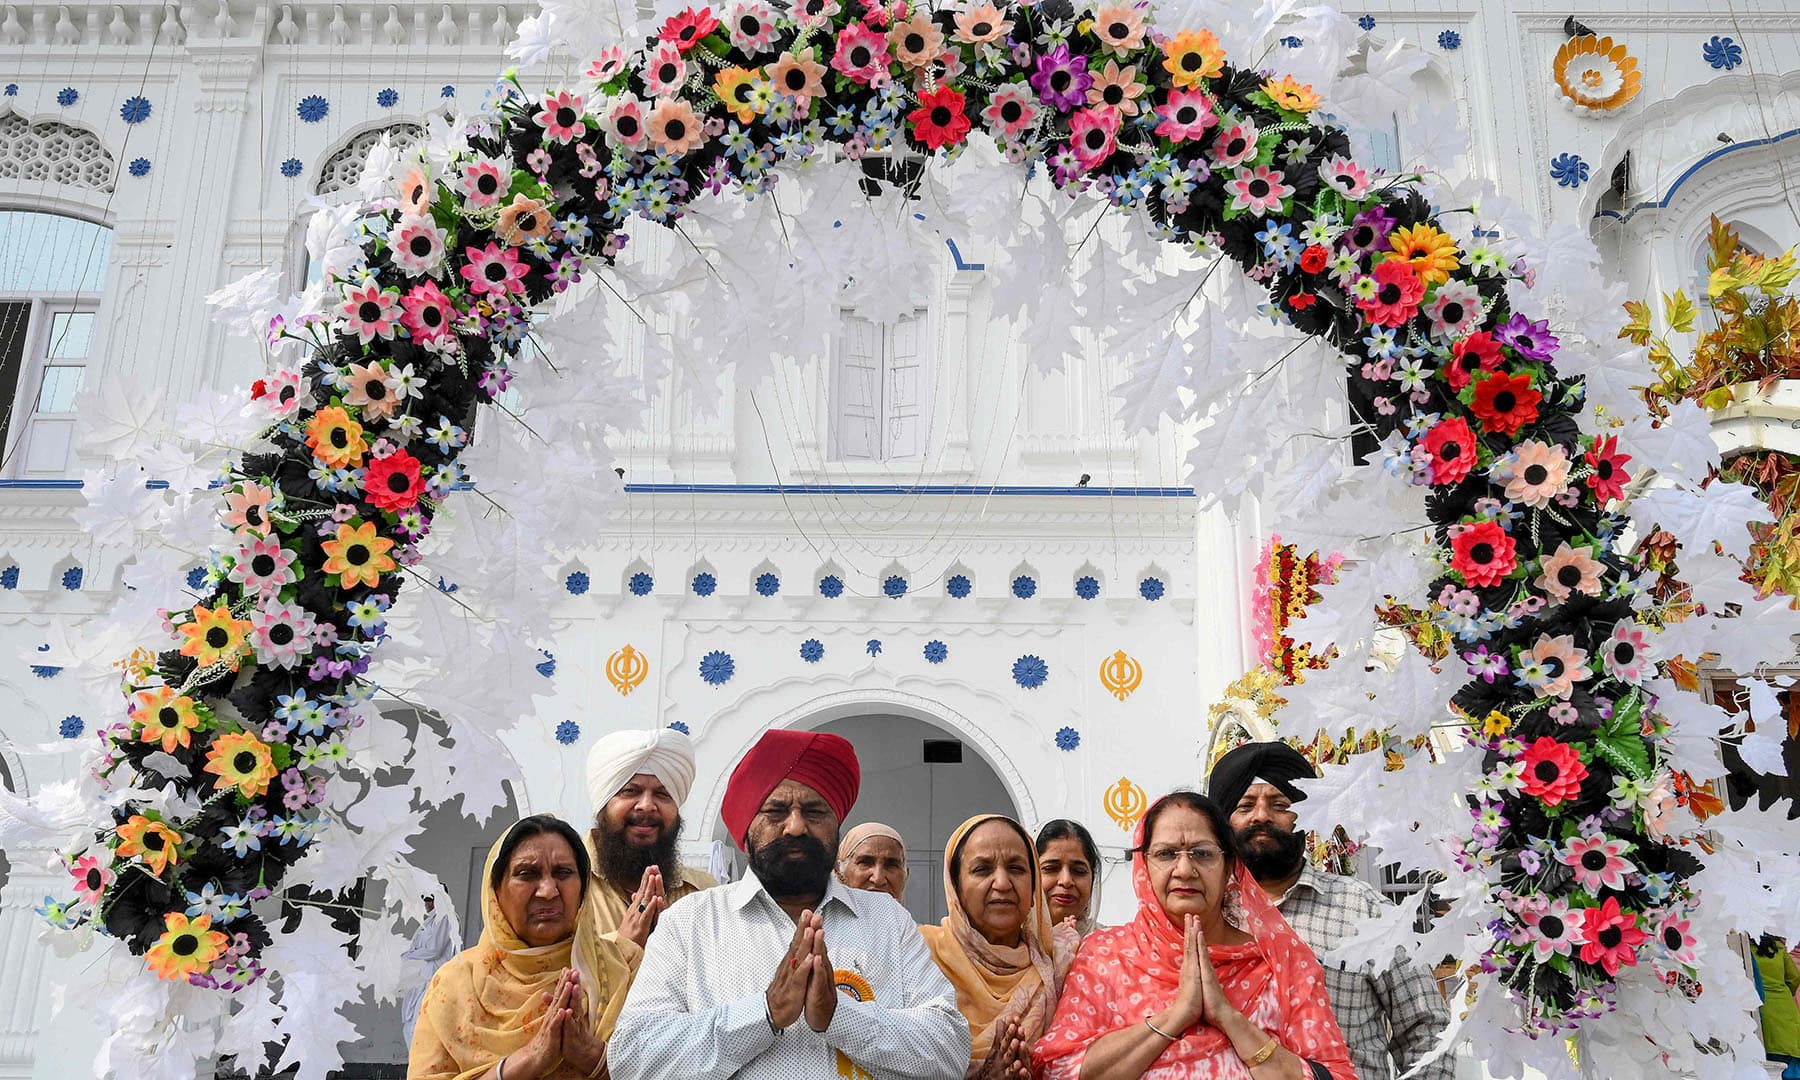 Sikh pilgrims pray as they take part in a ritual procession at a shrine in Nankana Sahib, some 75 km west of Lahore, on November 7. — AFP